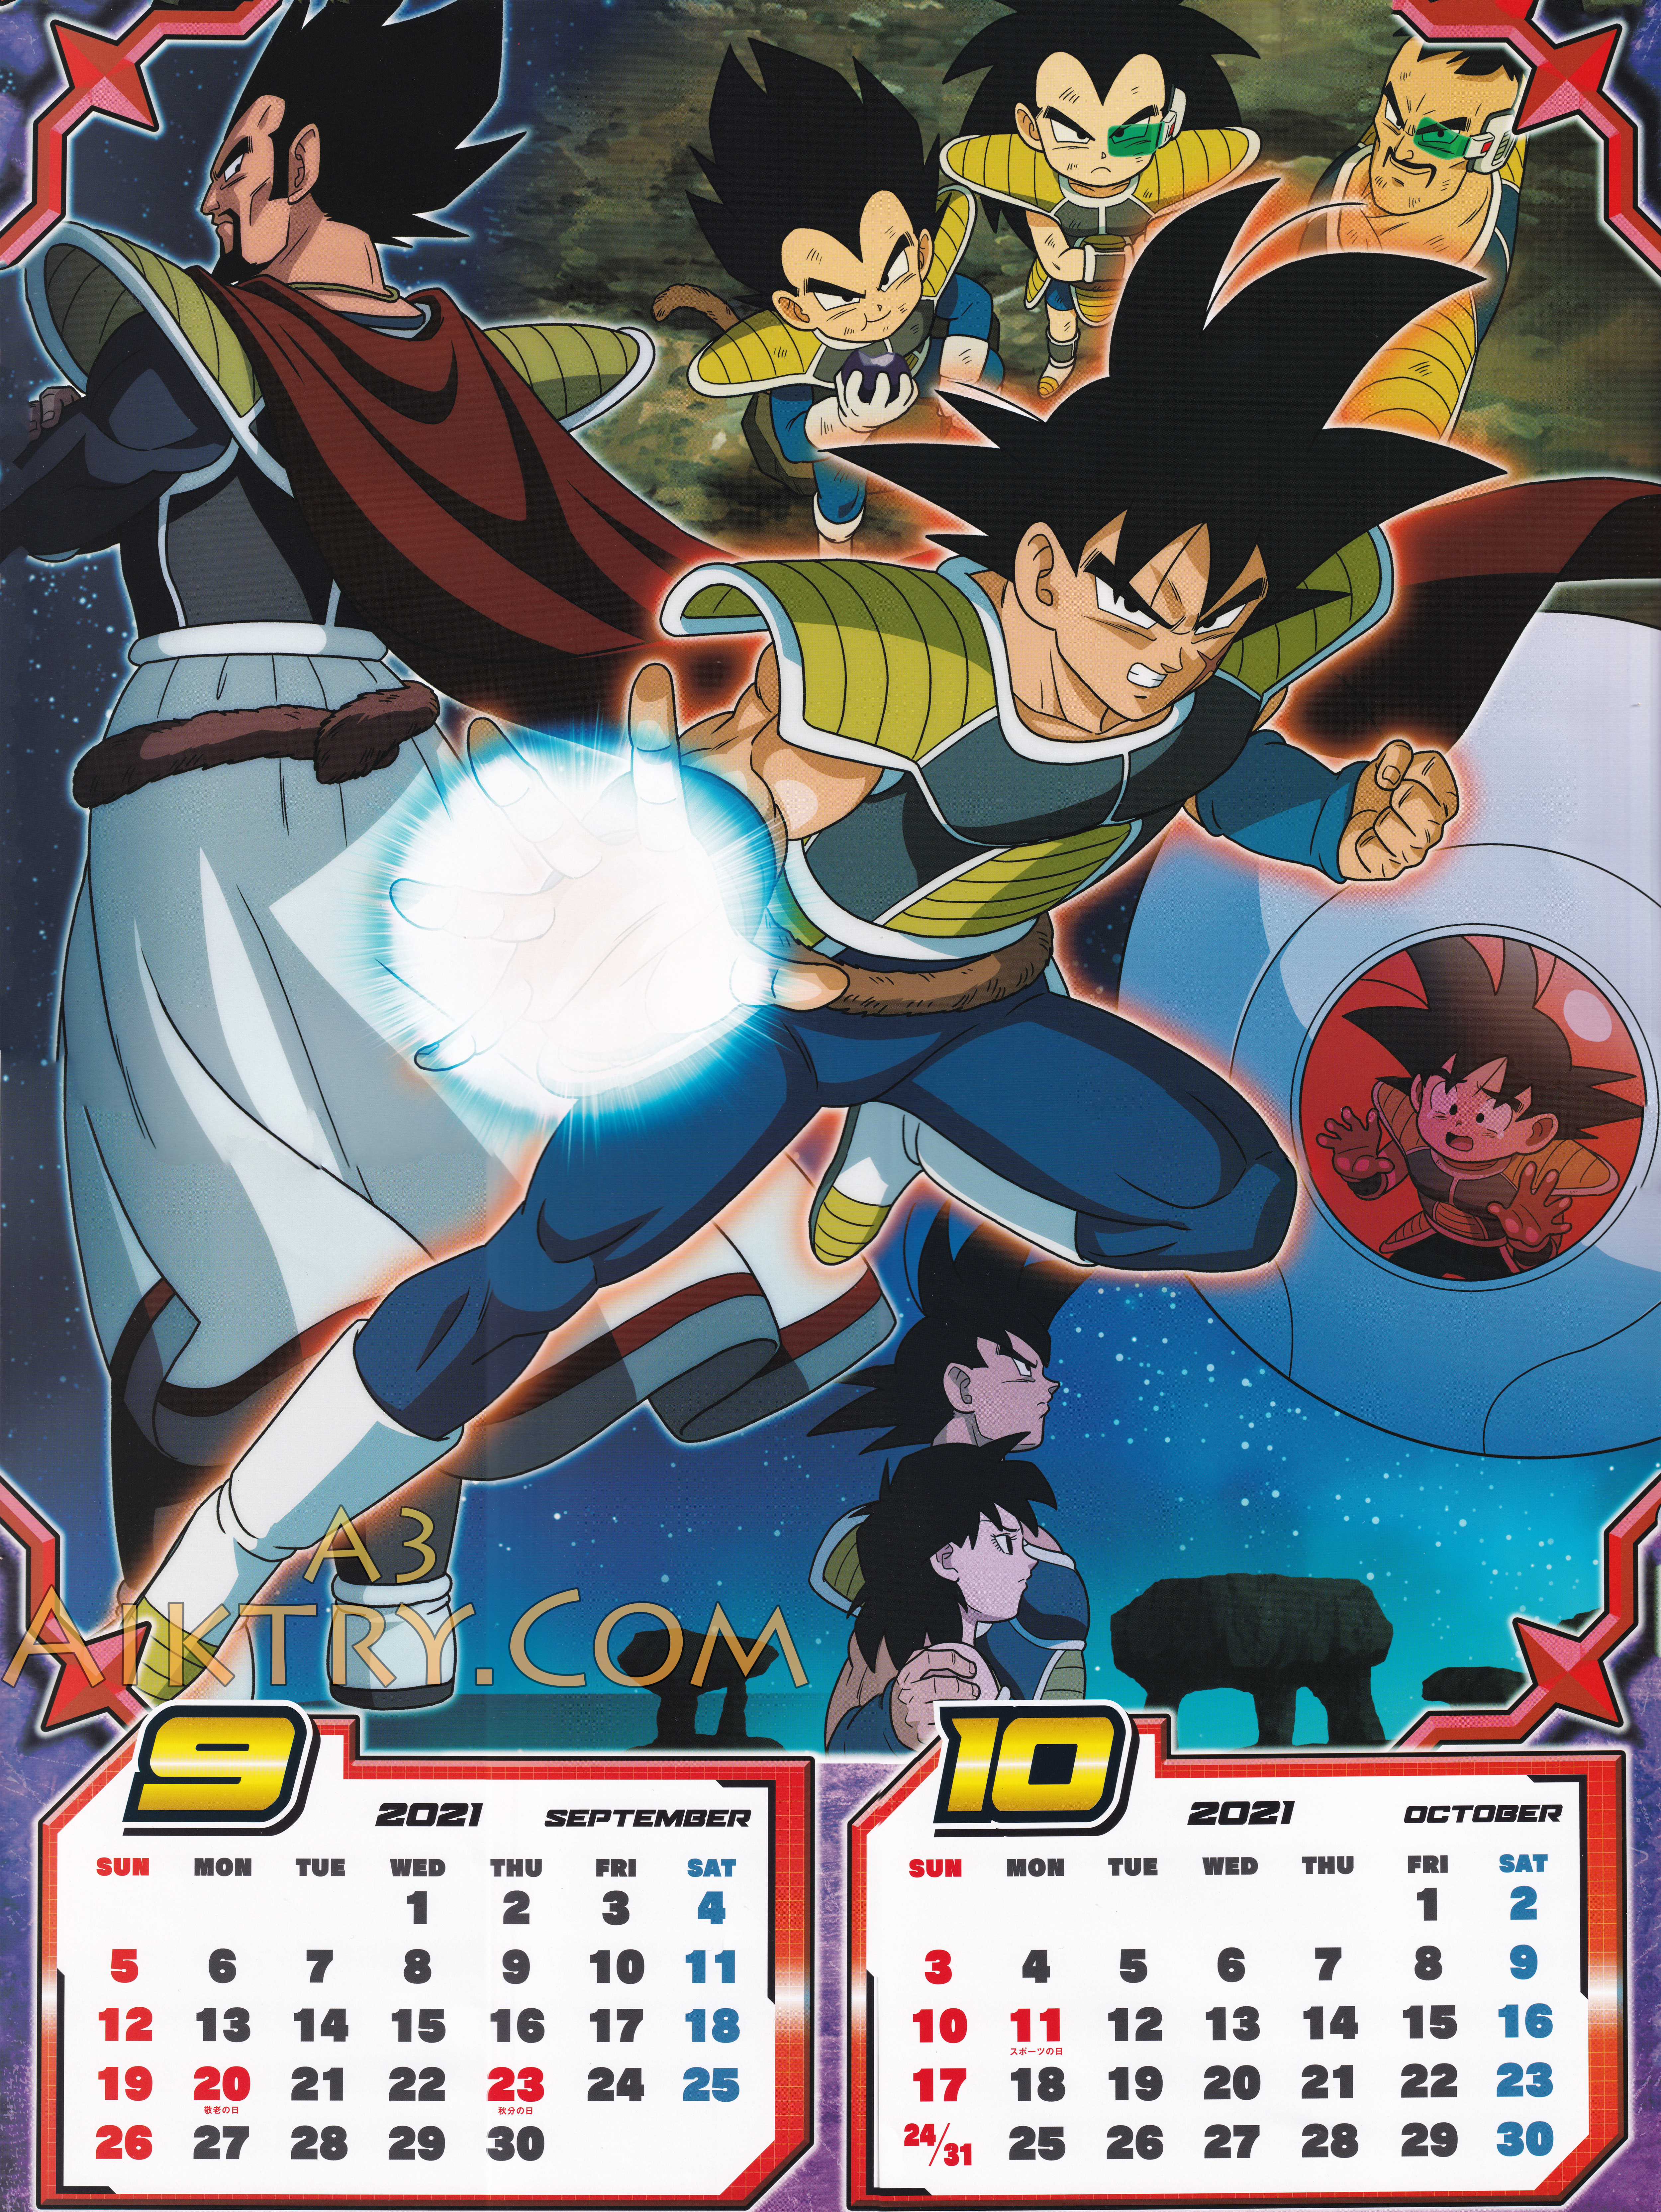 09-10 King Vegeta, Kid Vegeta, Raditz, Nappa, Bardock, Gine, Baby Goku (Dragon Ball Super 2021 Calendar)